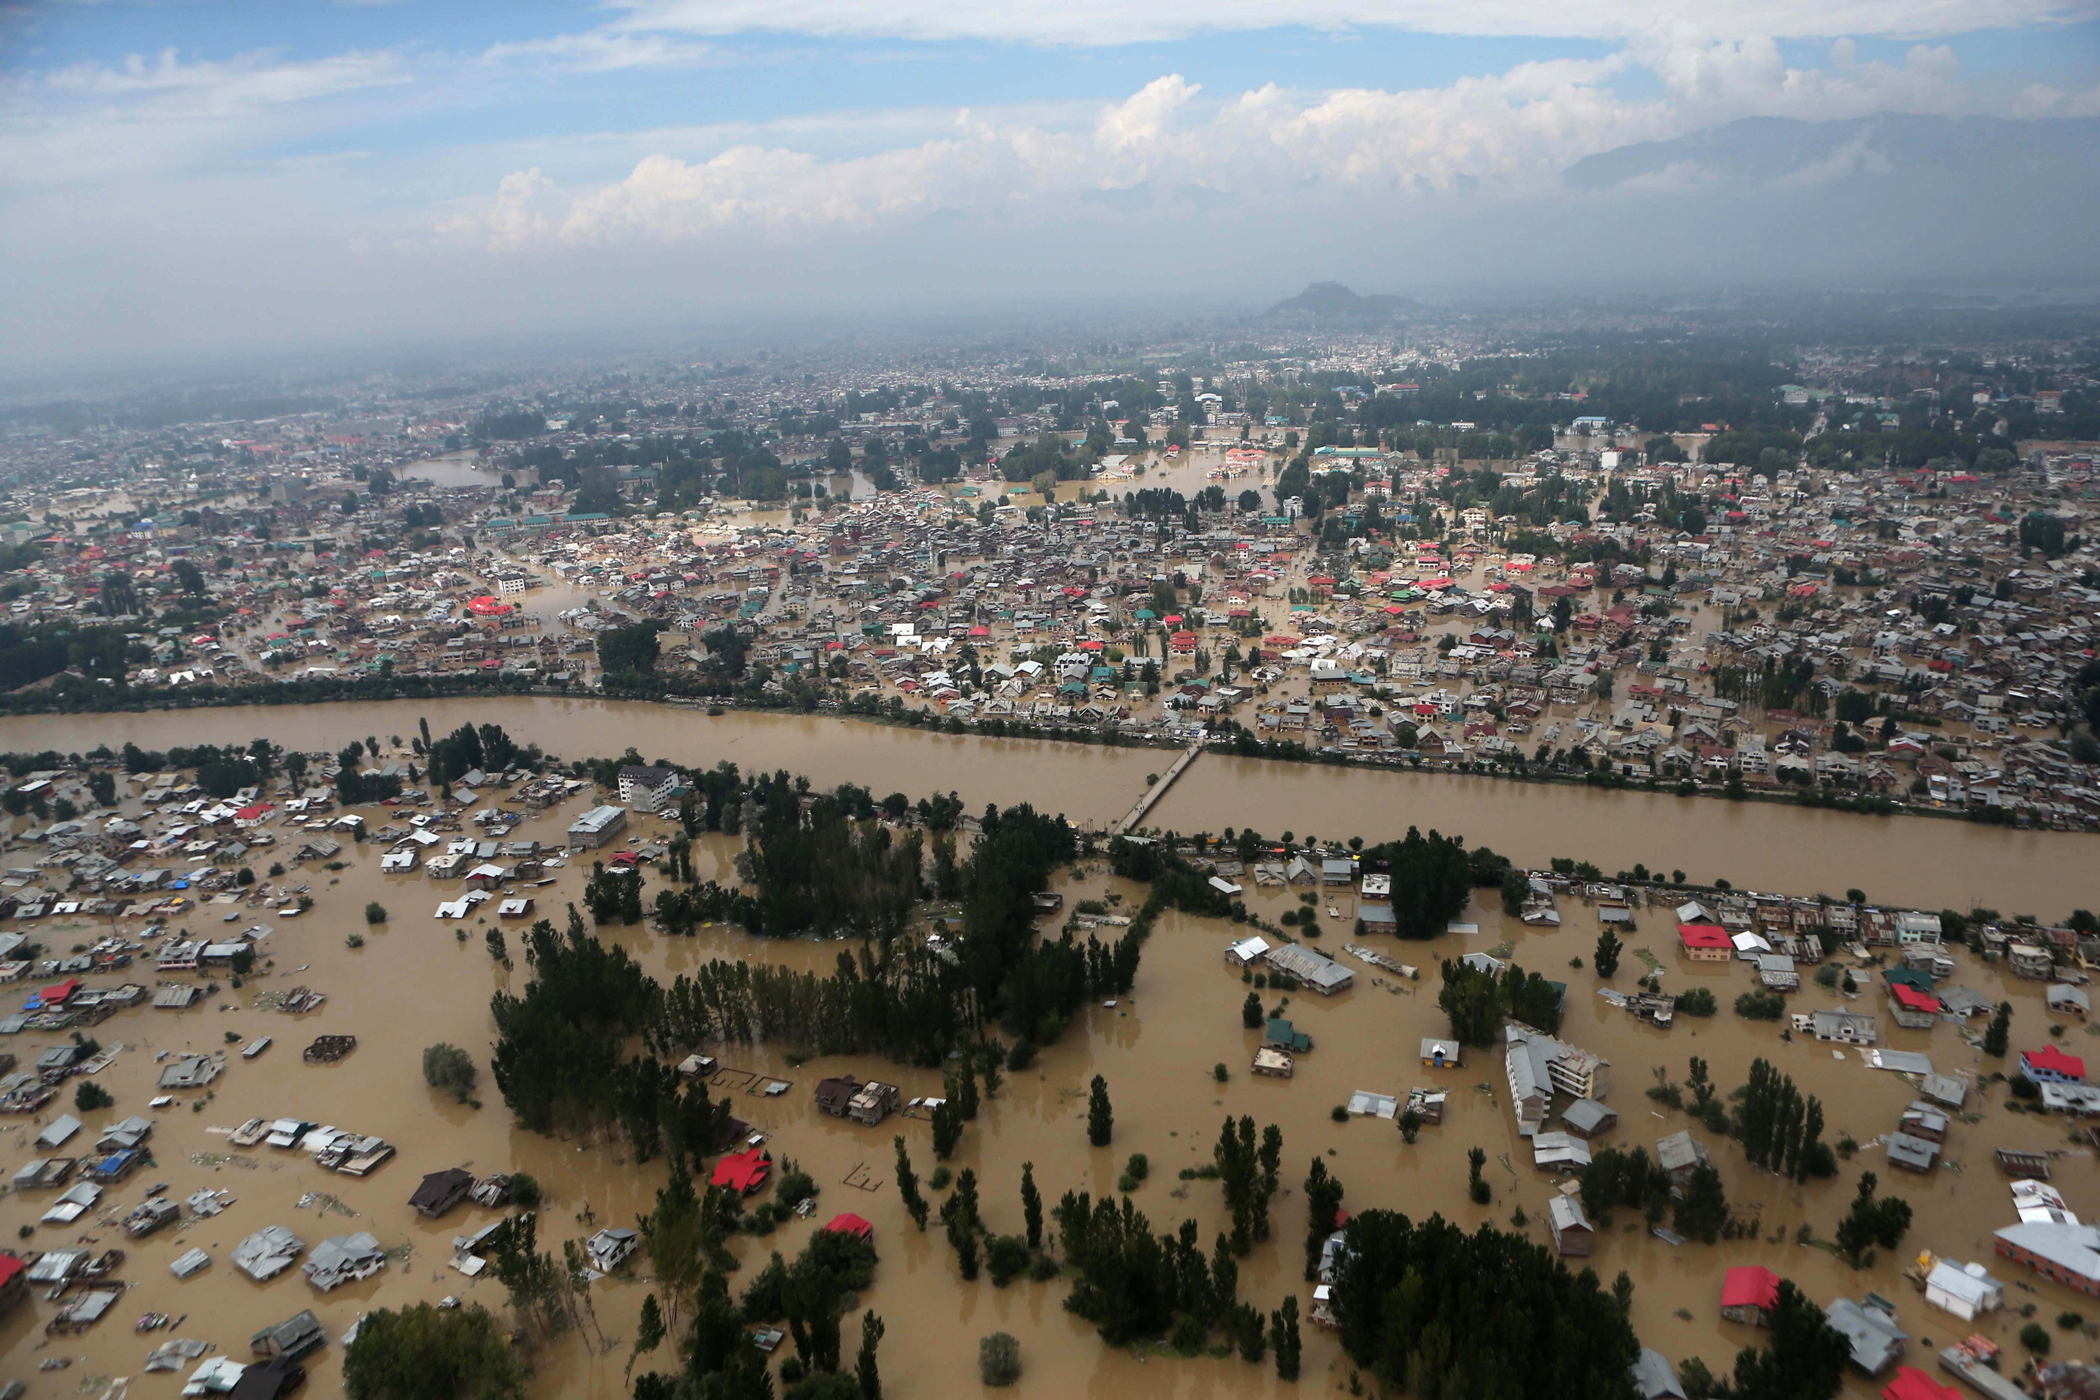 An aerial view shows buildings submerged in floodwaters in Srinagar, in Indian Kashmir, Sept. 9, 2014.